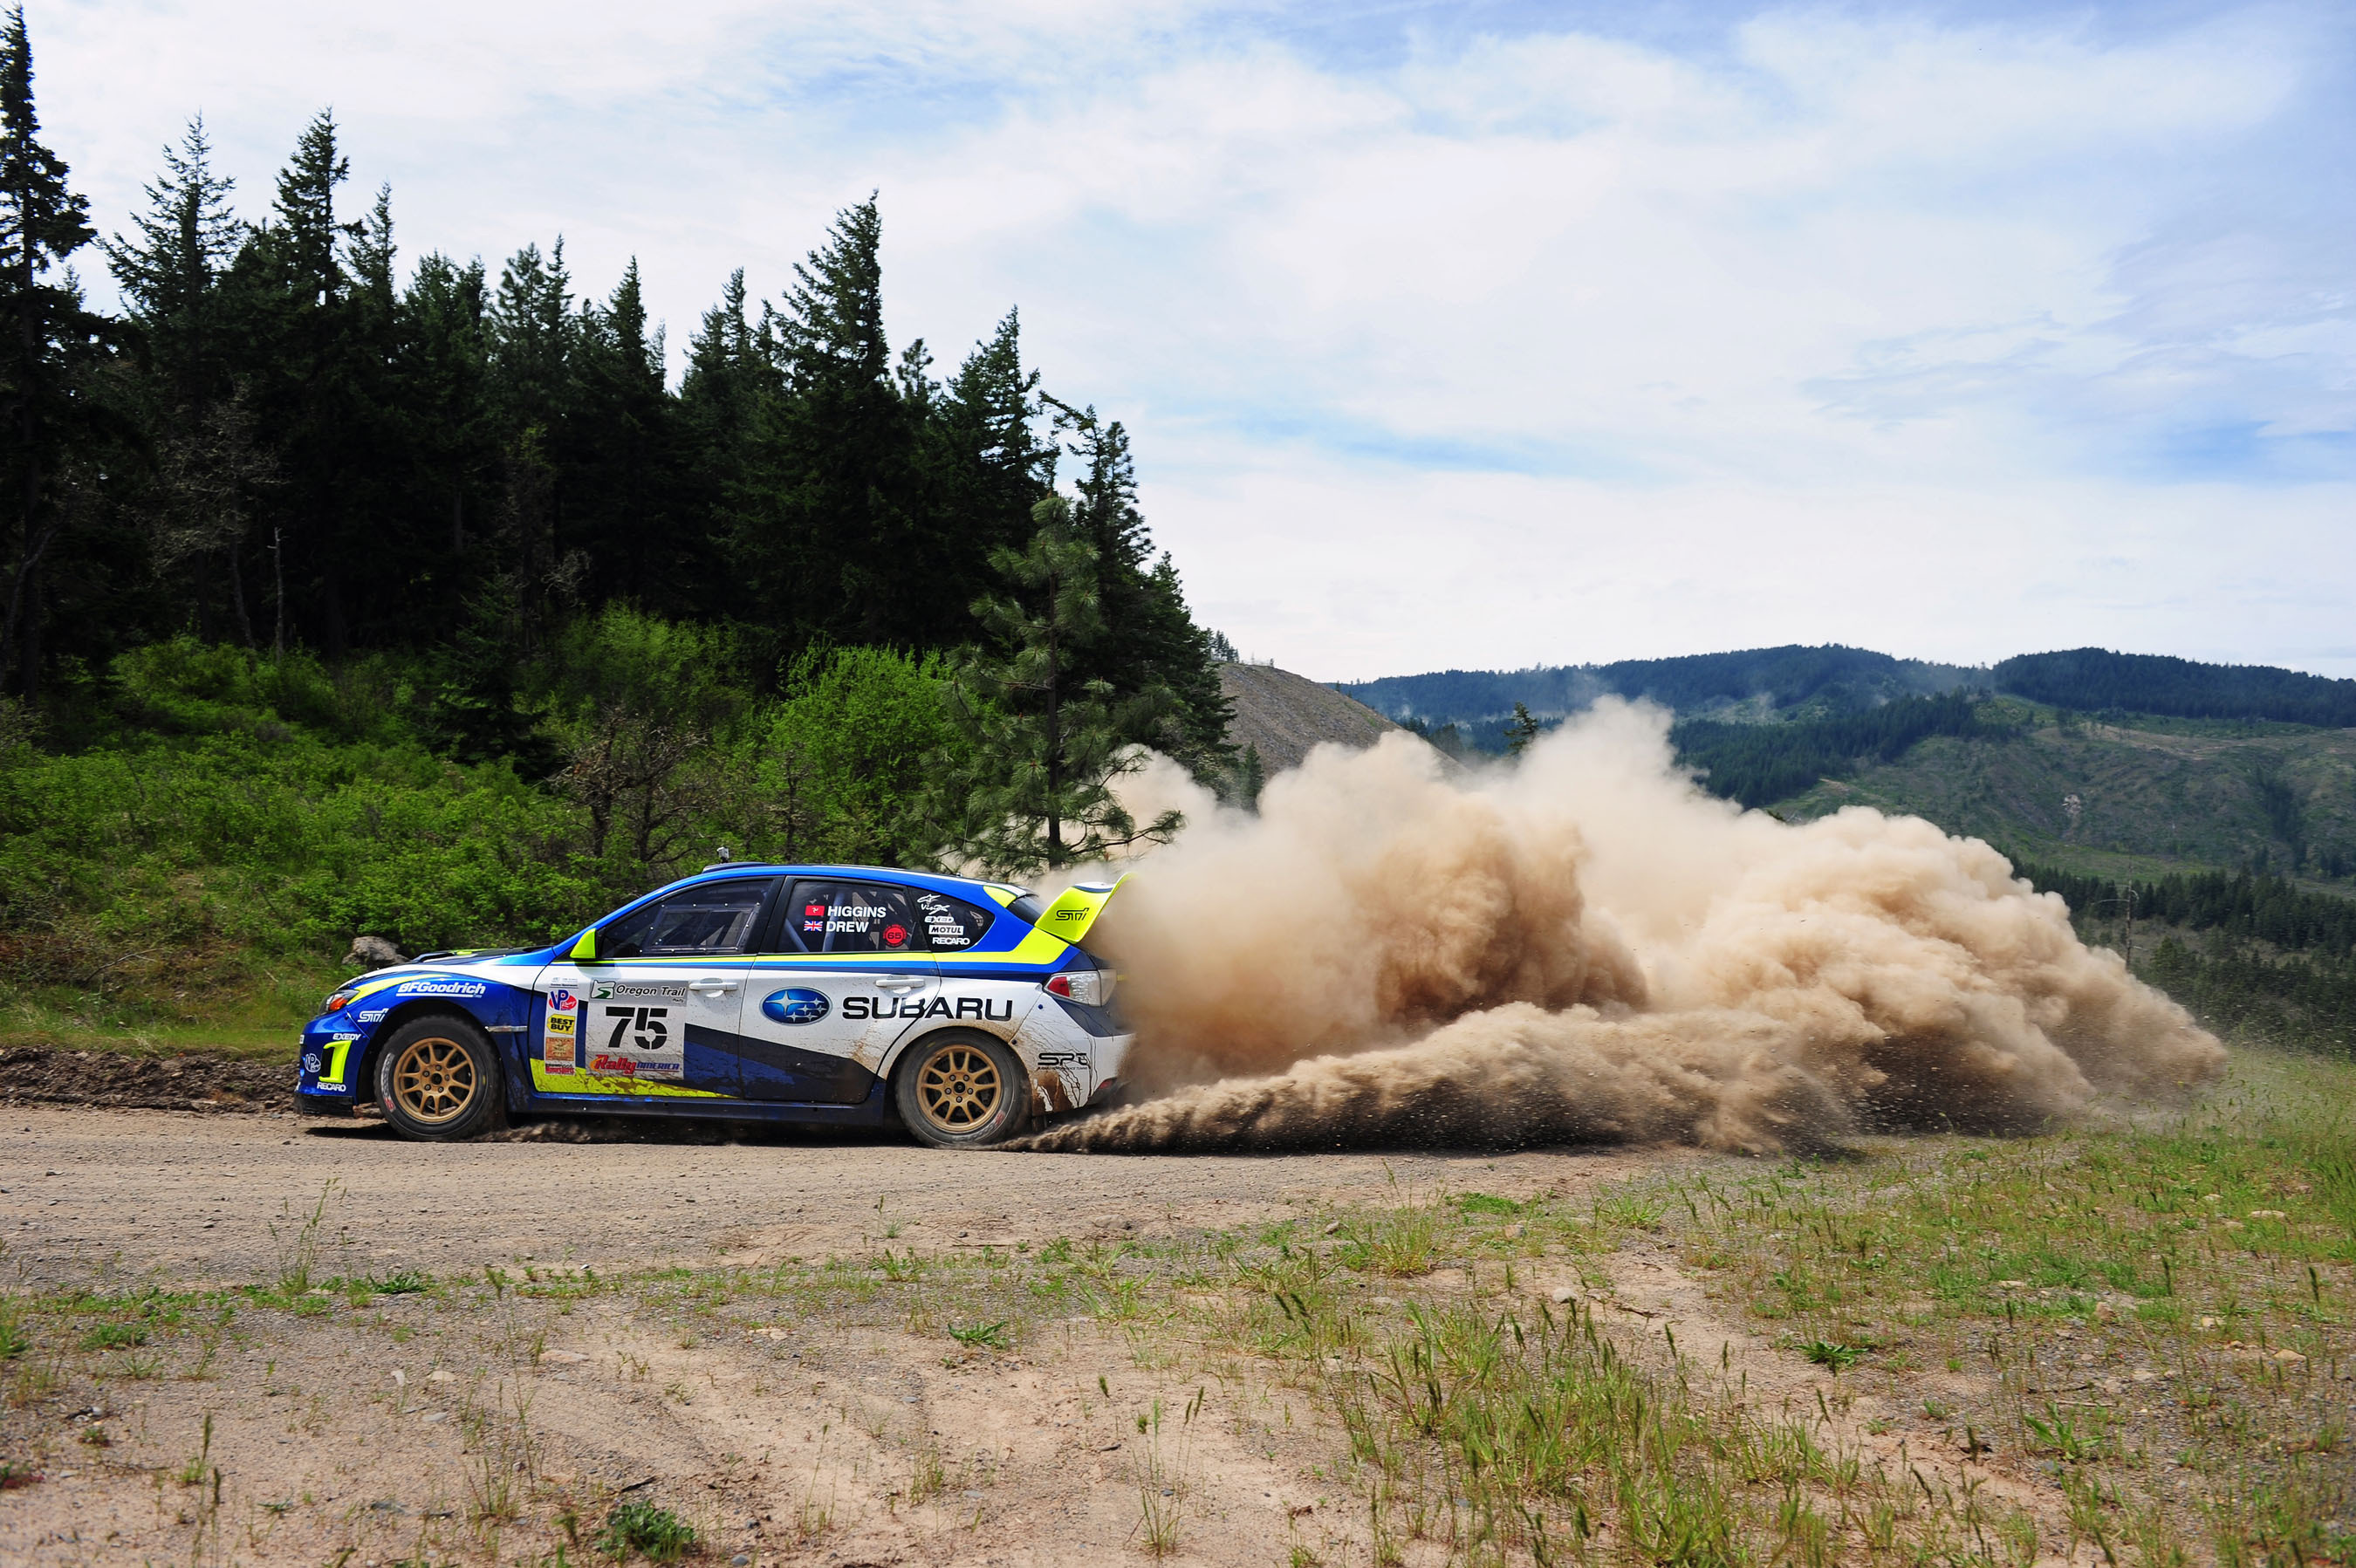 39249942 Adorable Rally Images 4K Ultra HD, 2700x1797